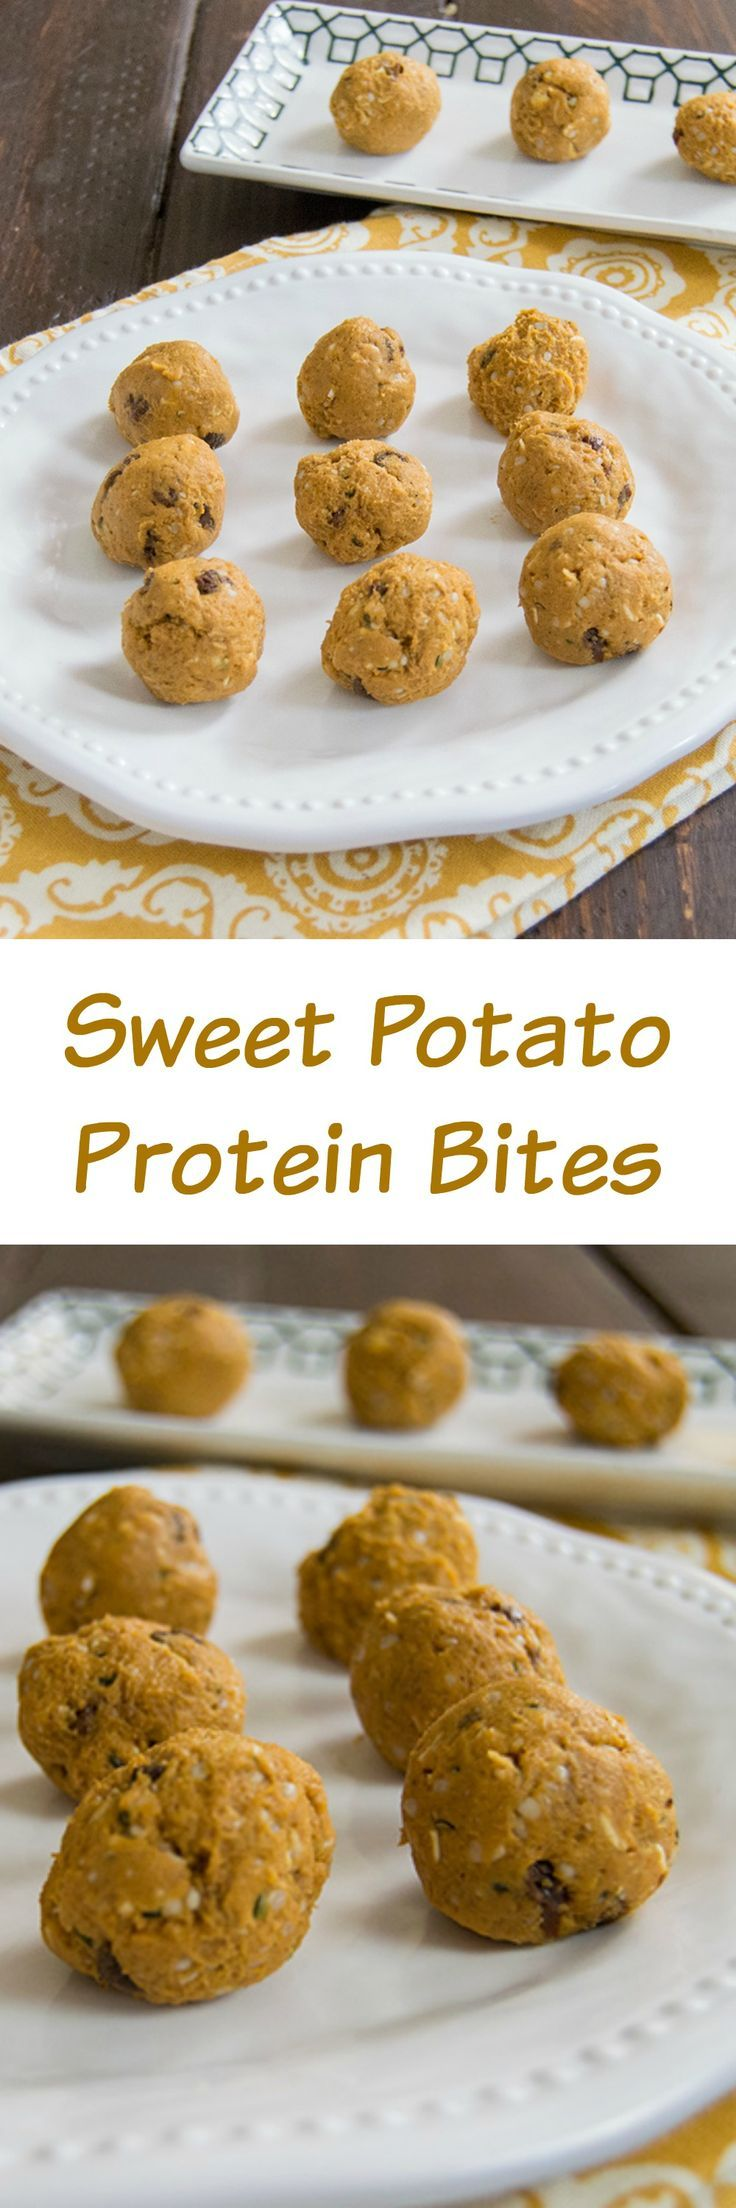 Healthy Sweet Potato Protein Bites - these vegan, low fat, high protein energy bites are perfect for after school snacks or post workout treats! This recipe is so simple to make!